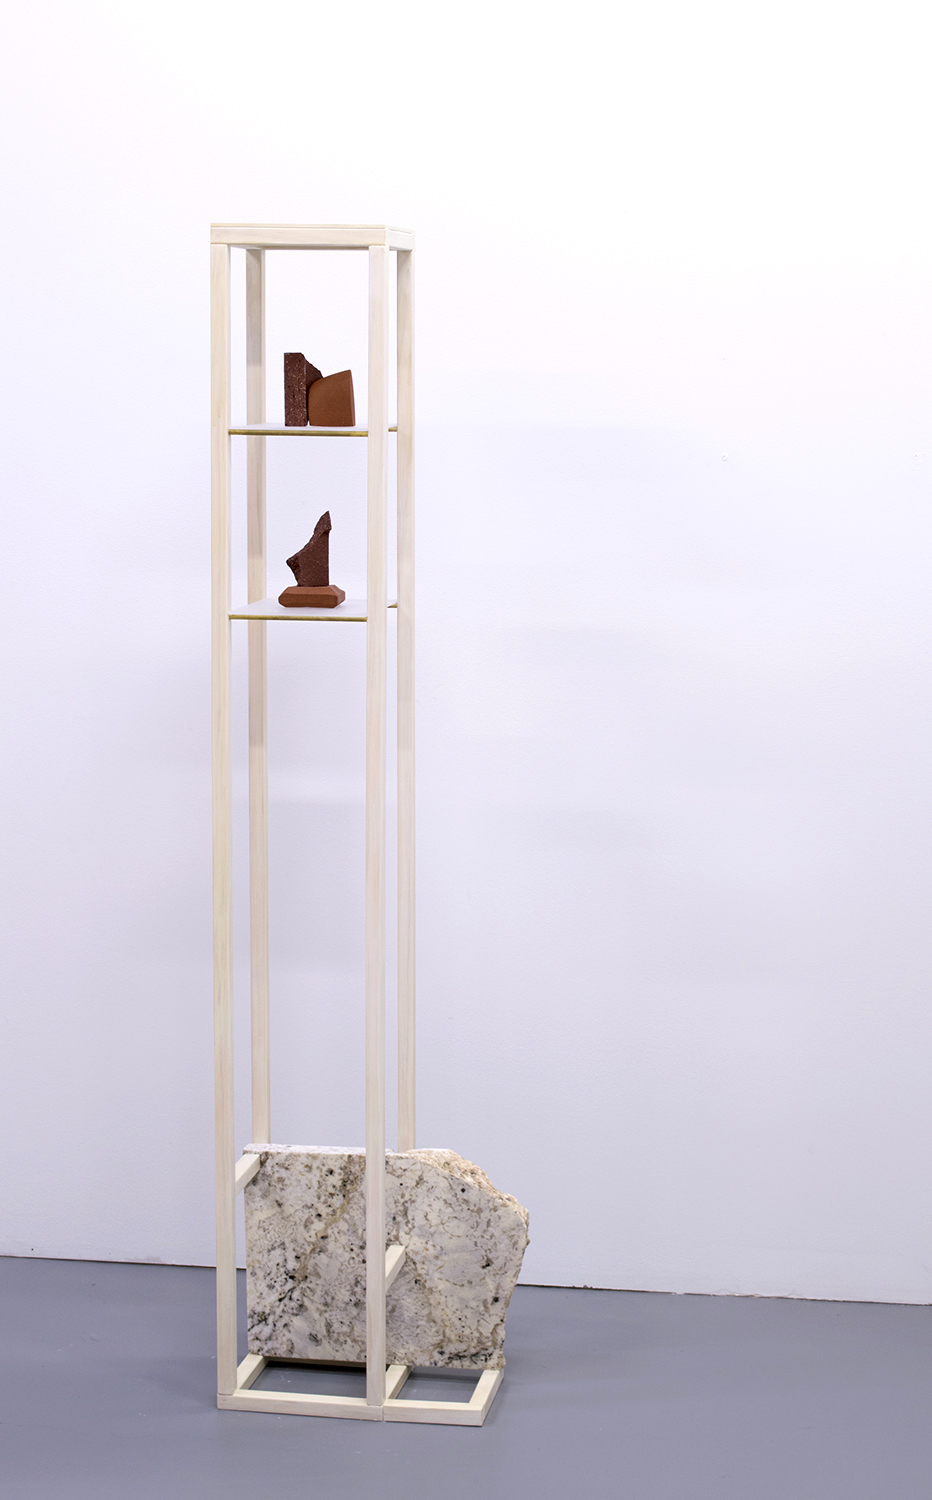 Just Beyond Tree Line,  2016  53 x 13 x 7 inches  wood, granite, ceramic, brass rod, and plexi-glass